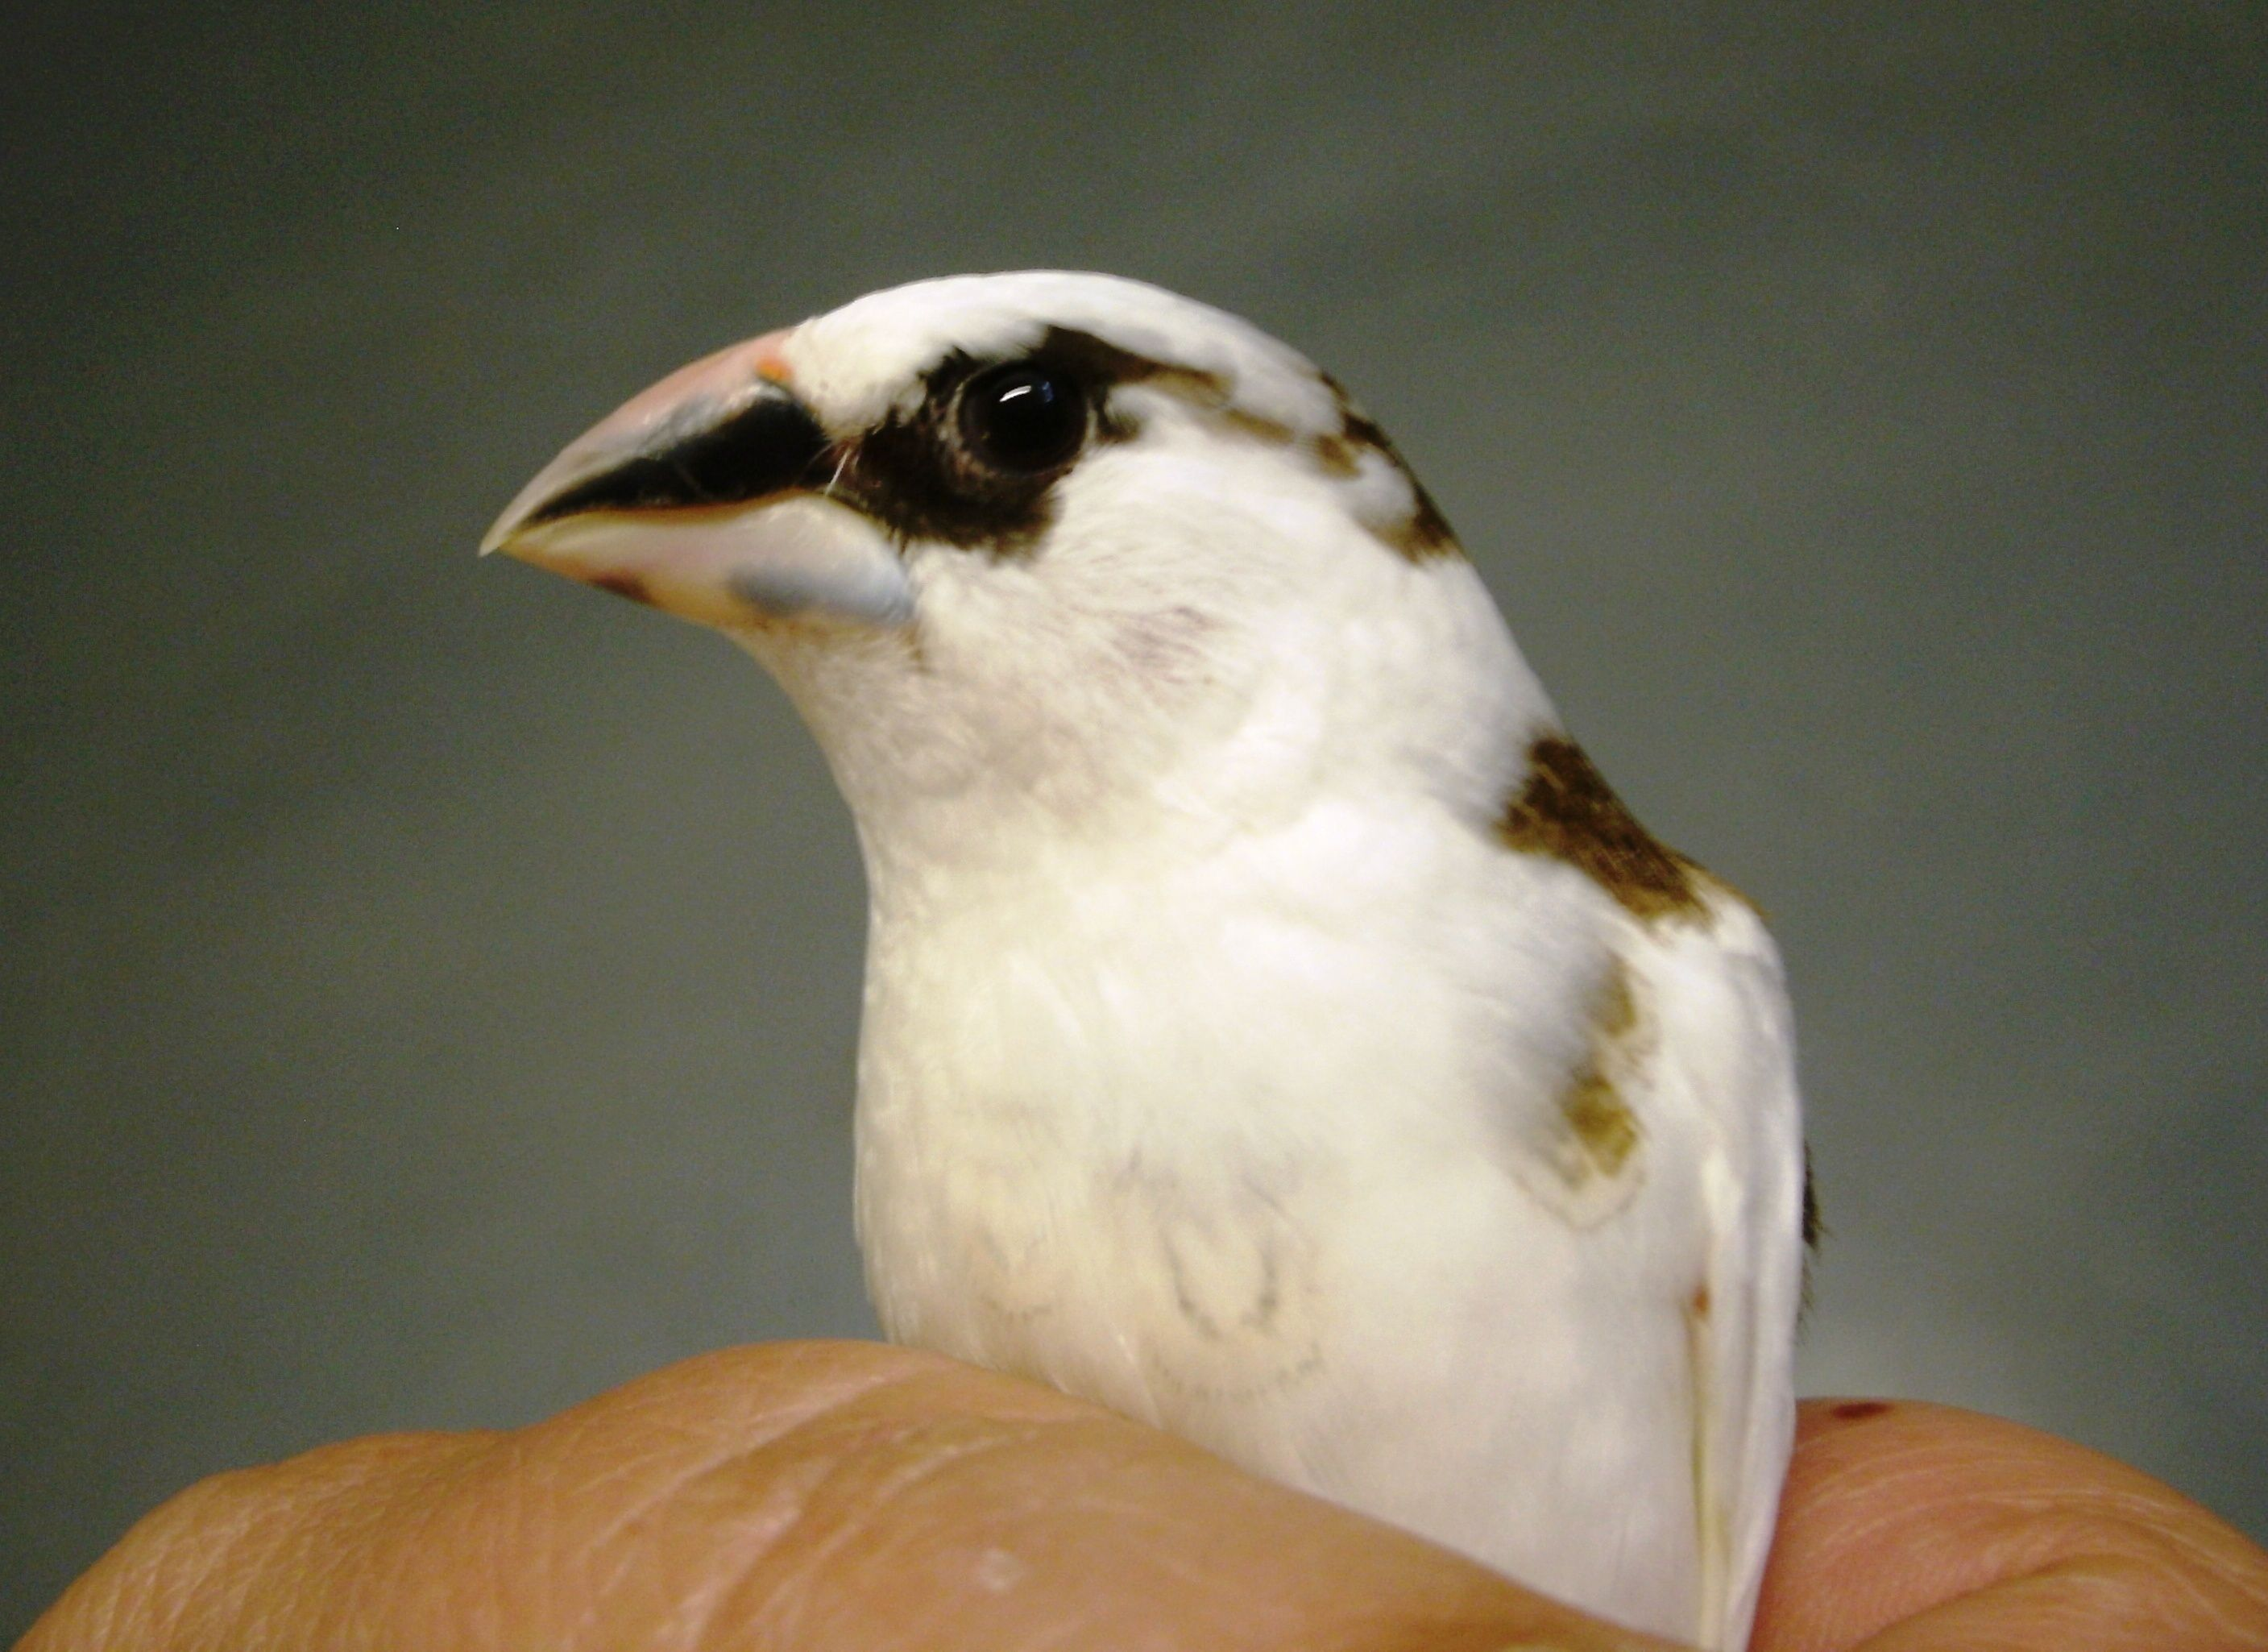 Chocolate & white pied American Society finch